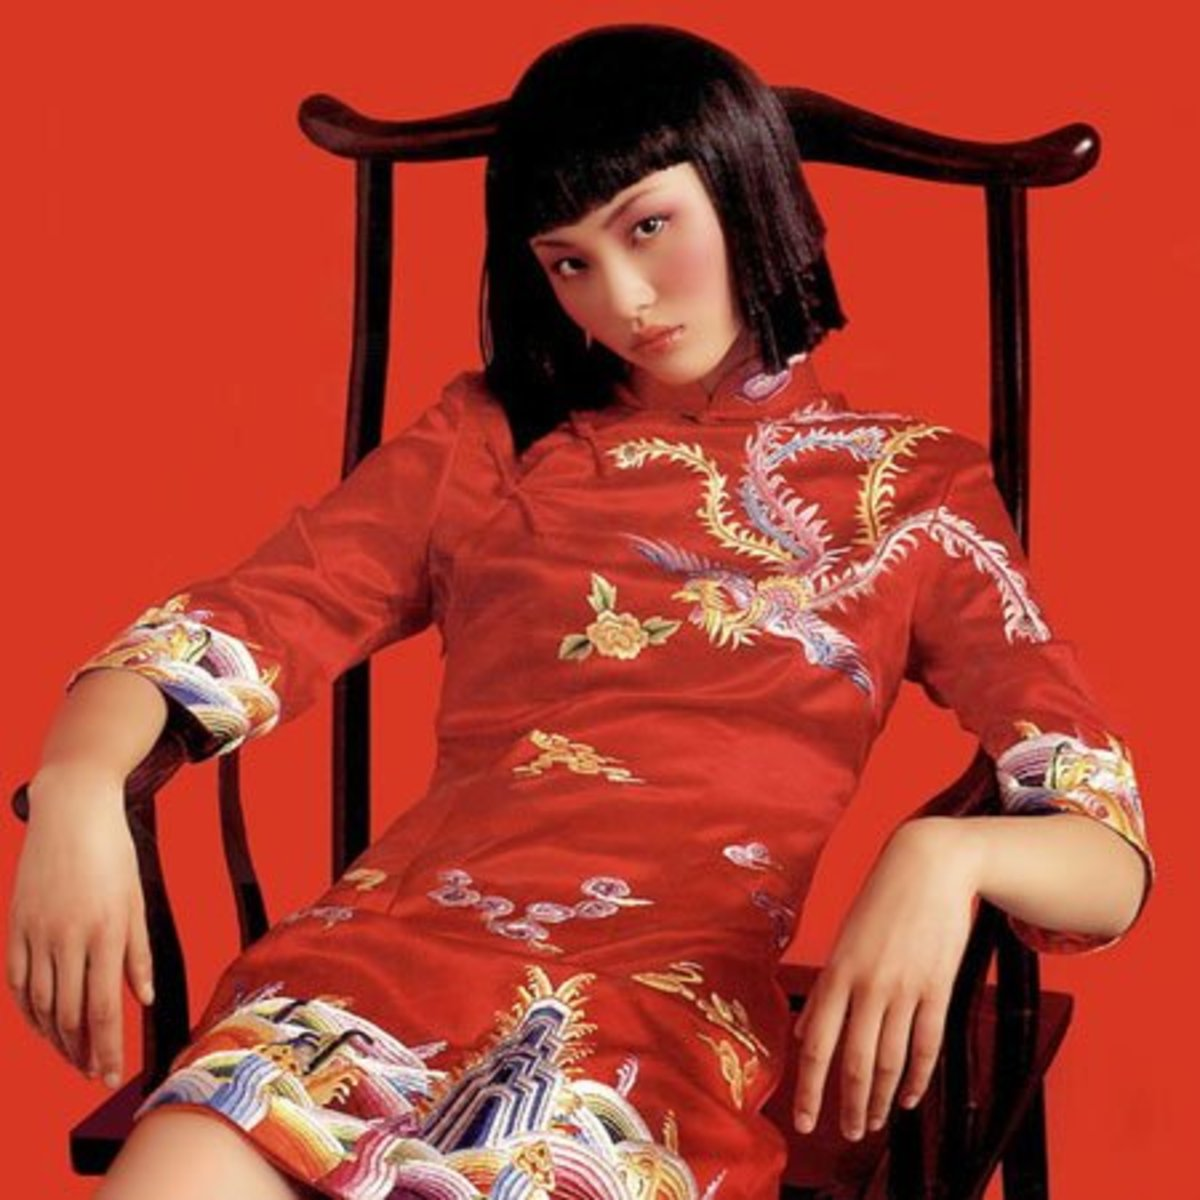 RED cheongsam is the way to have a red dress in Chinese culture